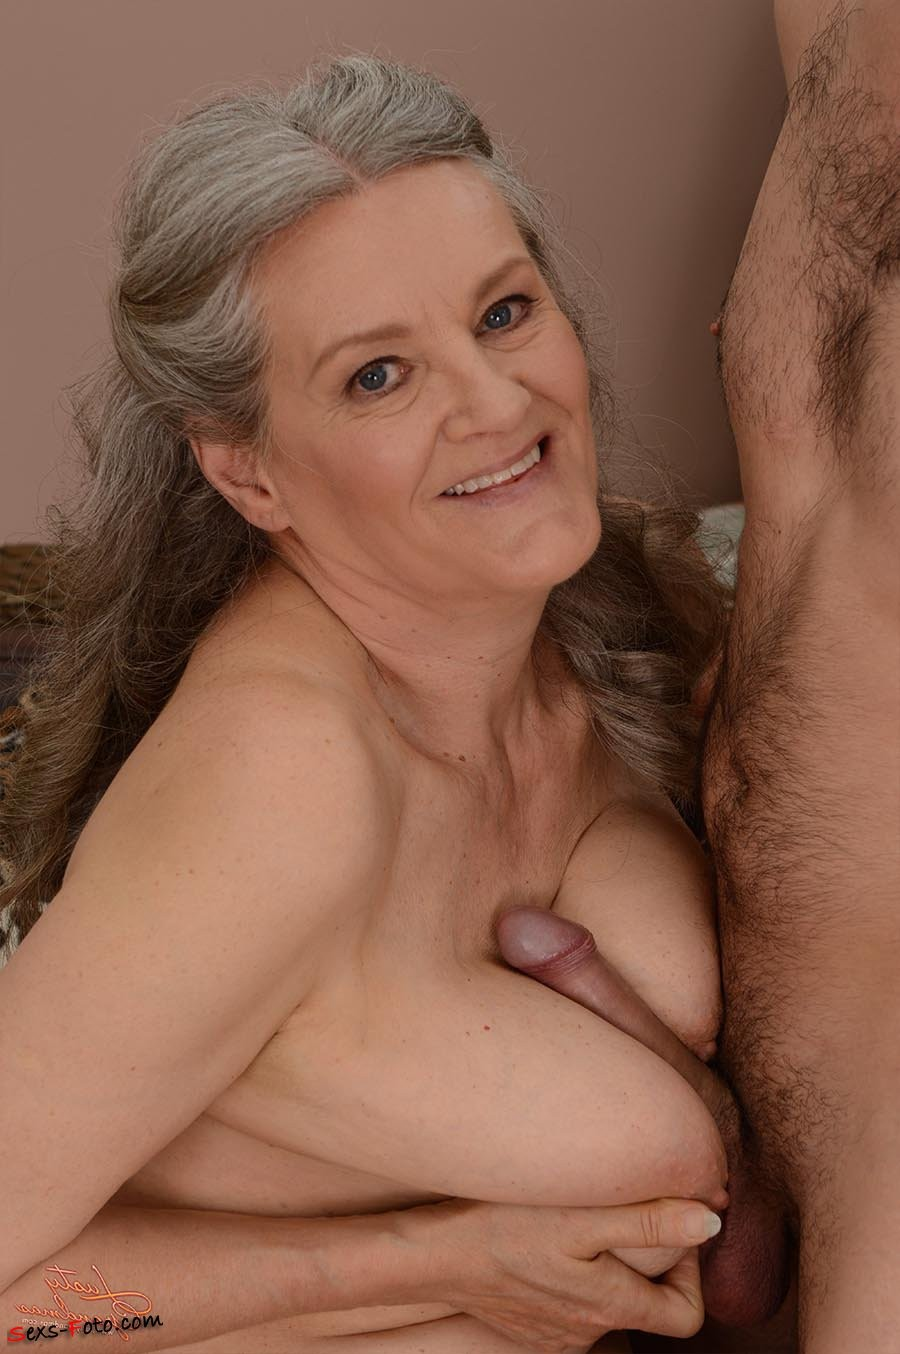 nude milf outdoor blowjobs – Anal